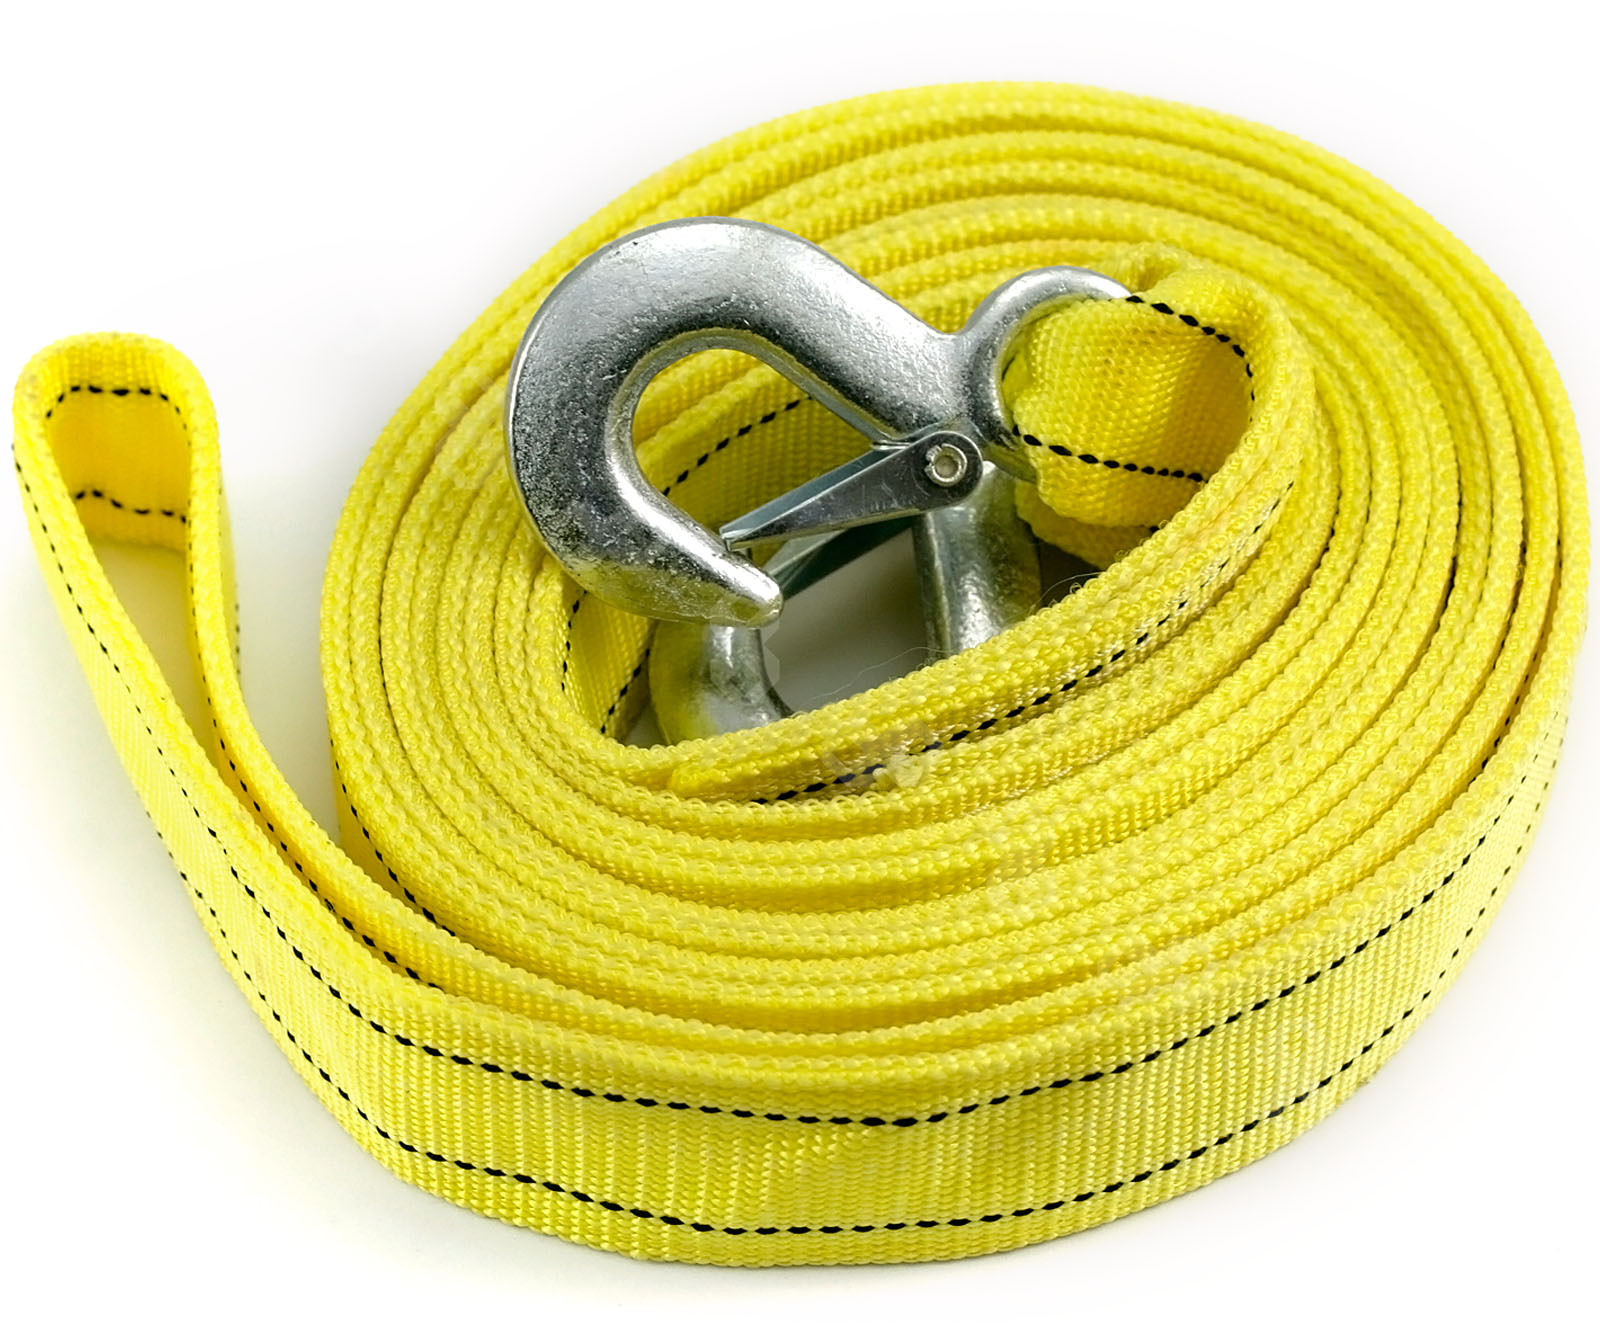 Vehicle Tow Straps : M tow towing pull vehicle rope strap heavy duty garage